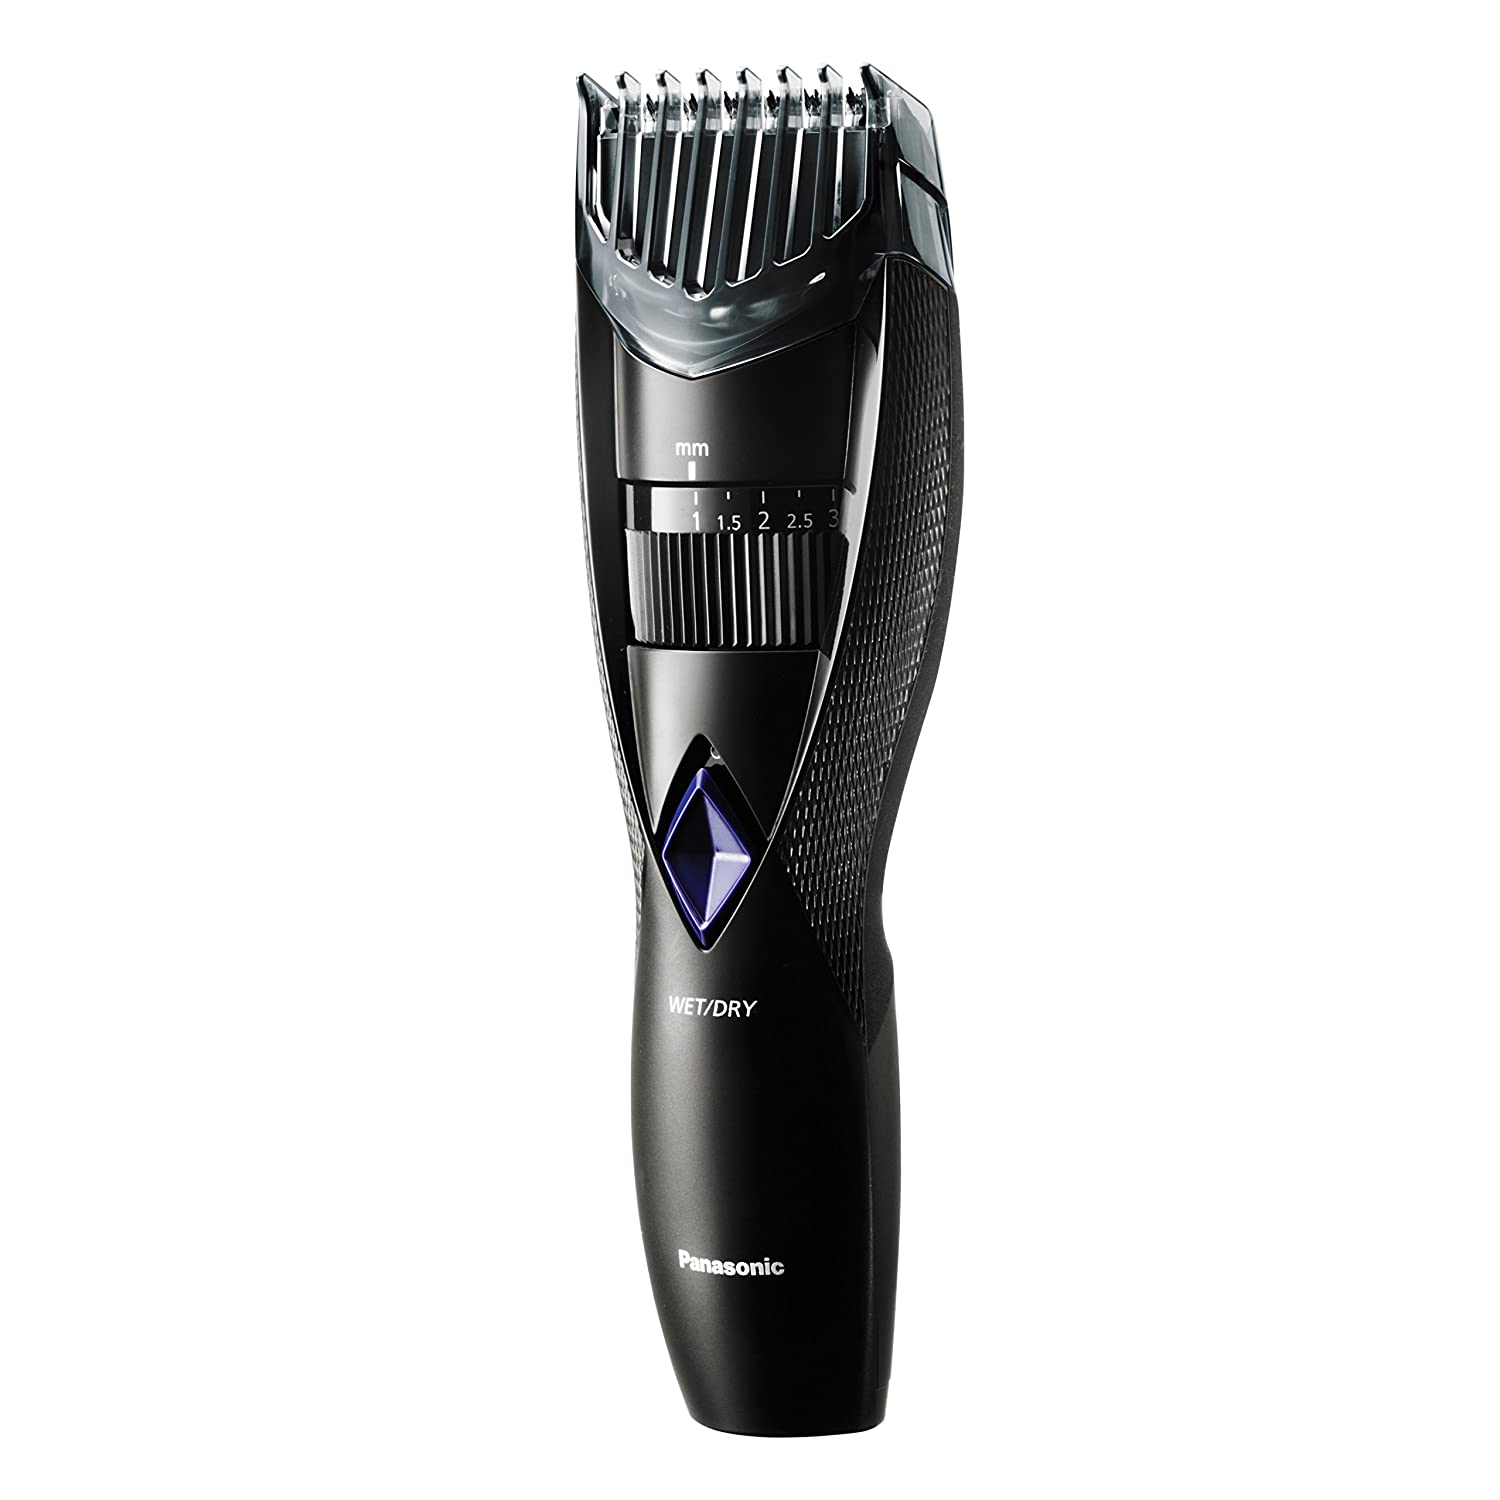 Panasonic Wet and Dry Cordless Electric Beard and Hair Trimmer for Men, Black, 6.6 Ounce